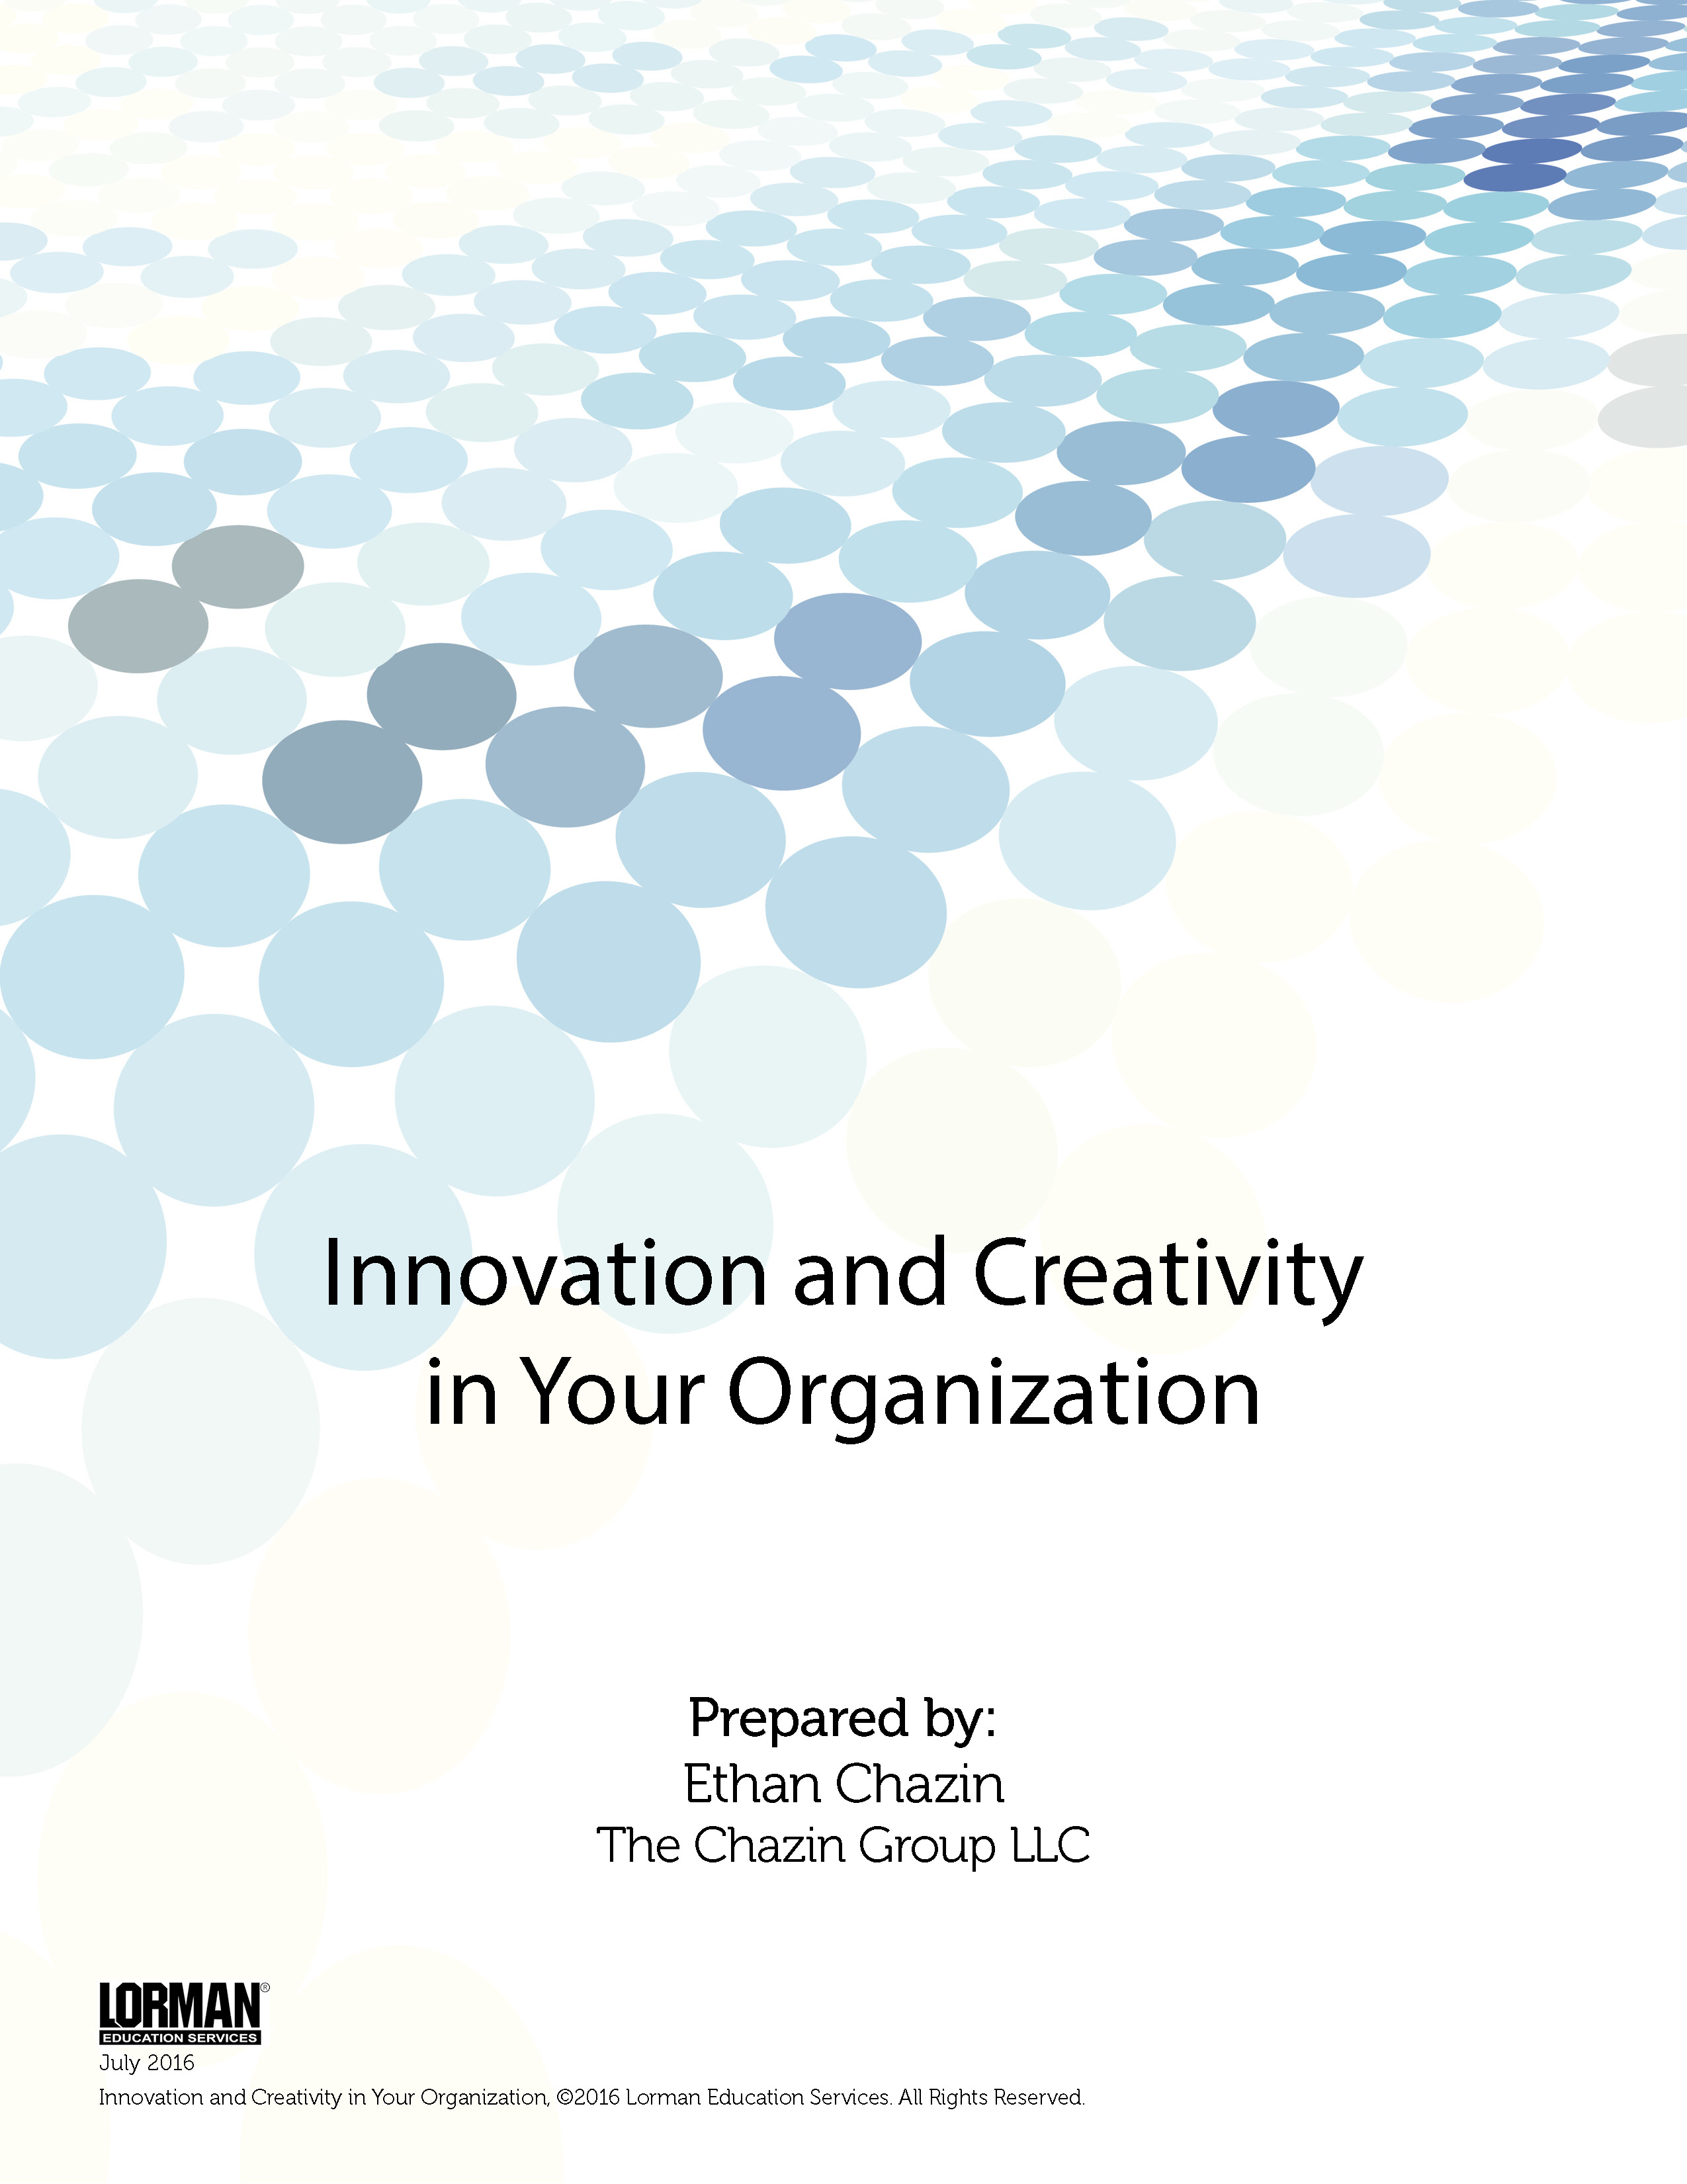 Innovation and Creativity in Your Organization